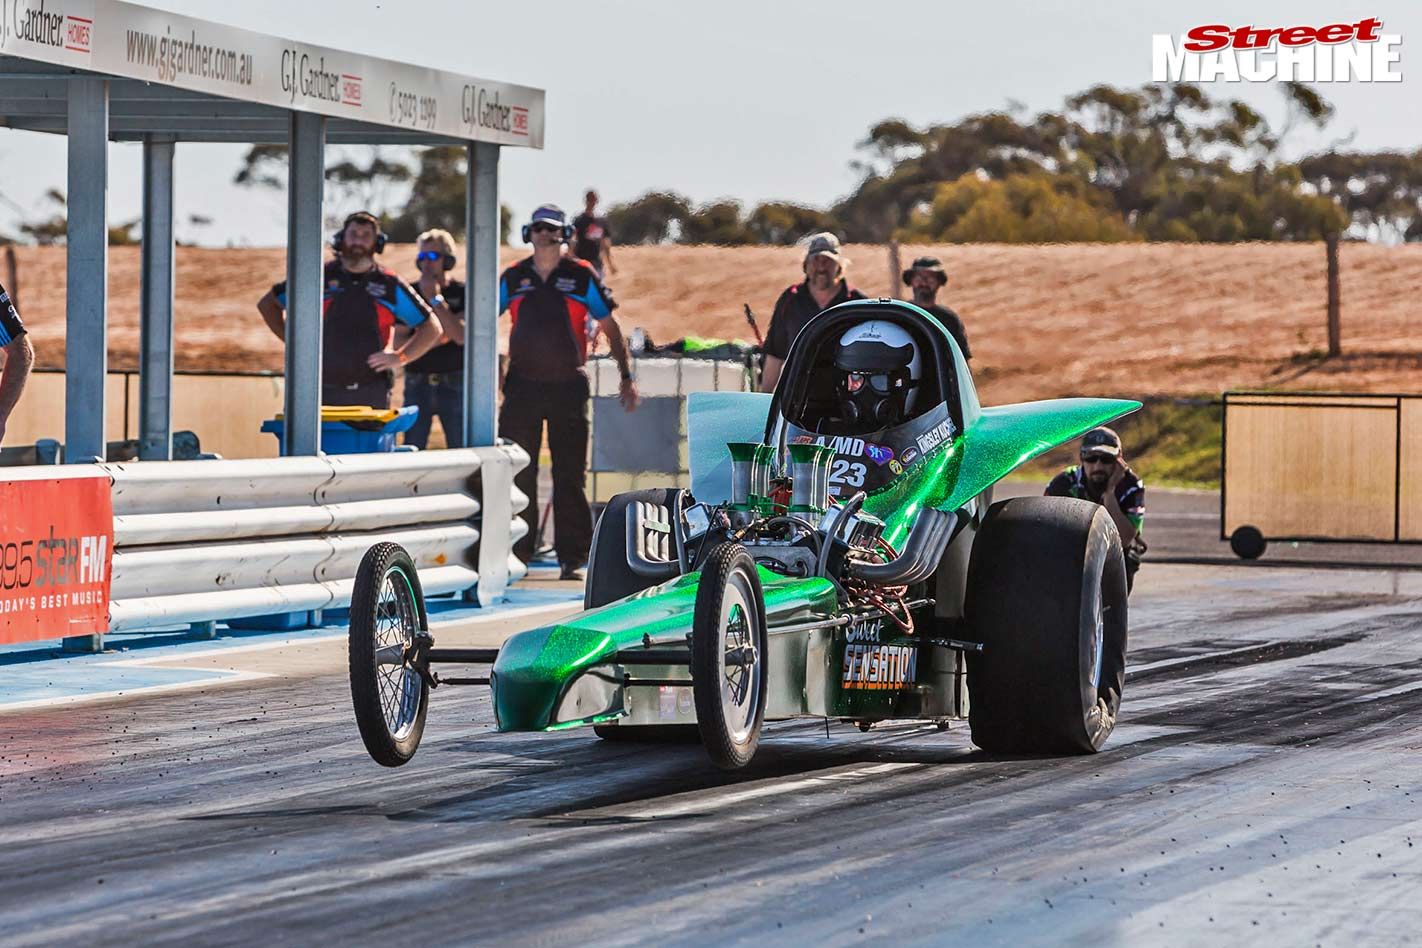 Fed dragster